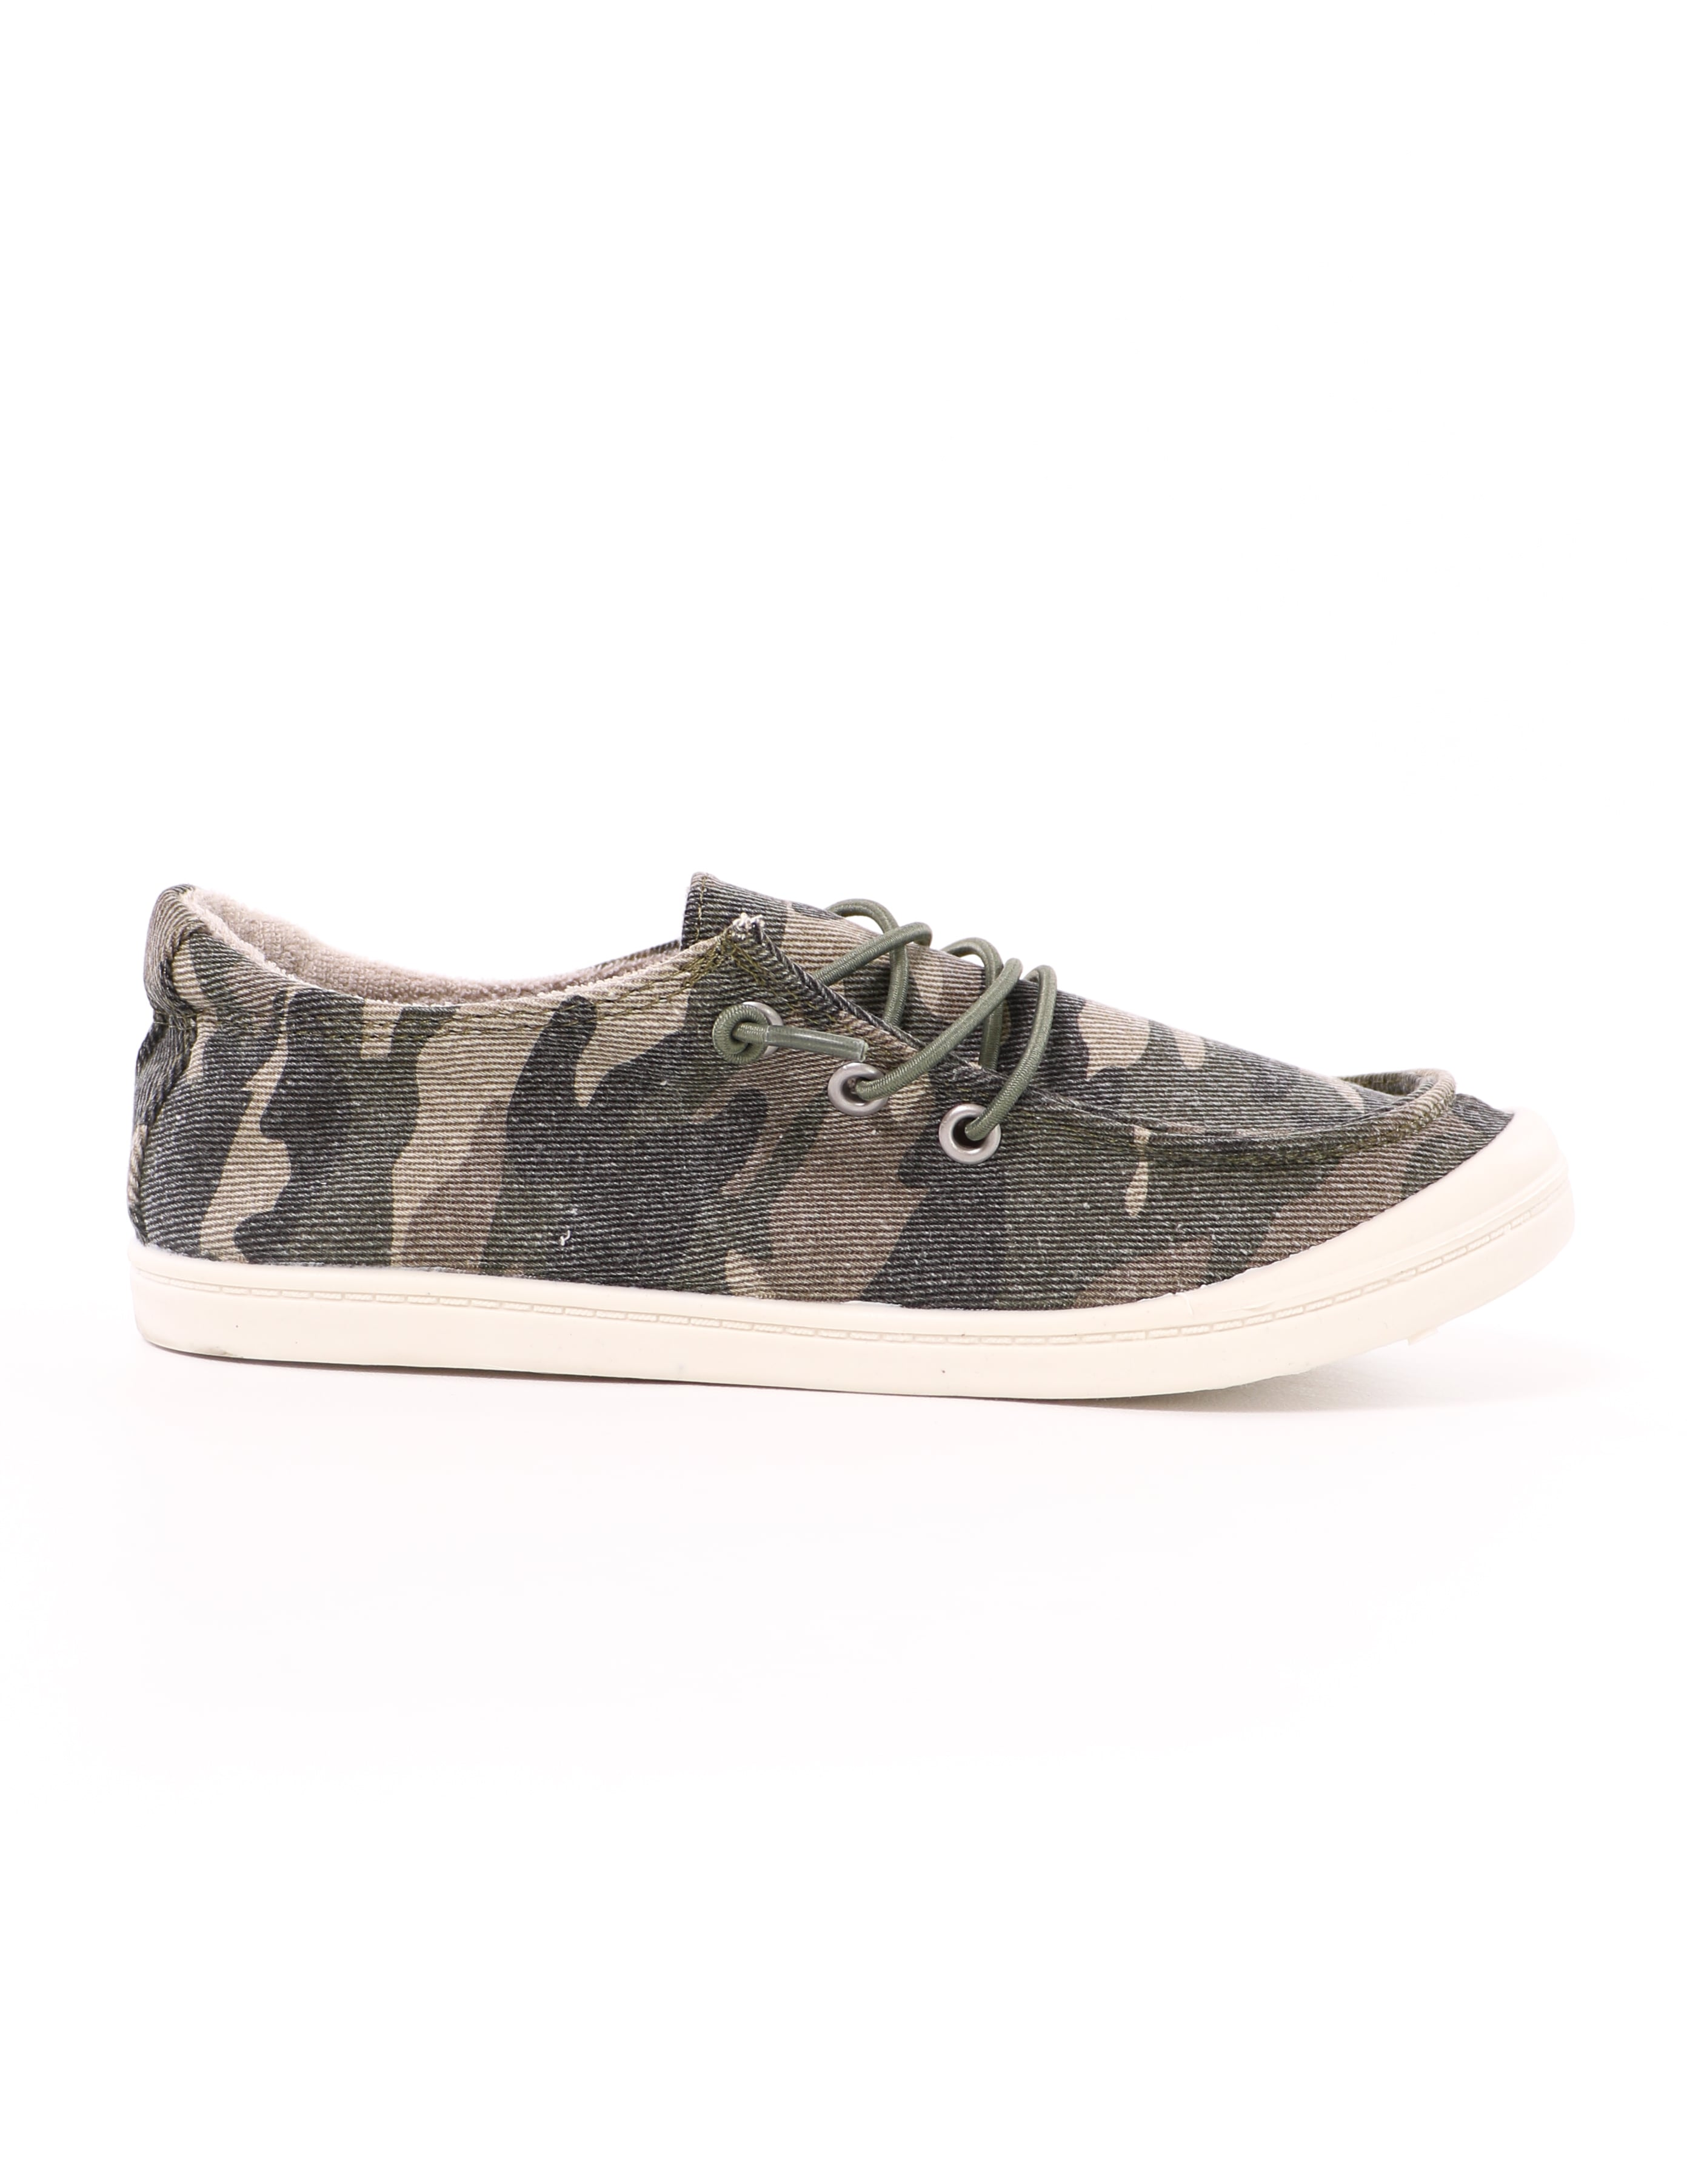 side of the camo thinkin' boat you slip on sneaker with white rubber sole - elle bleu shoes